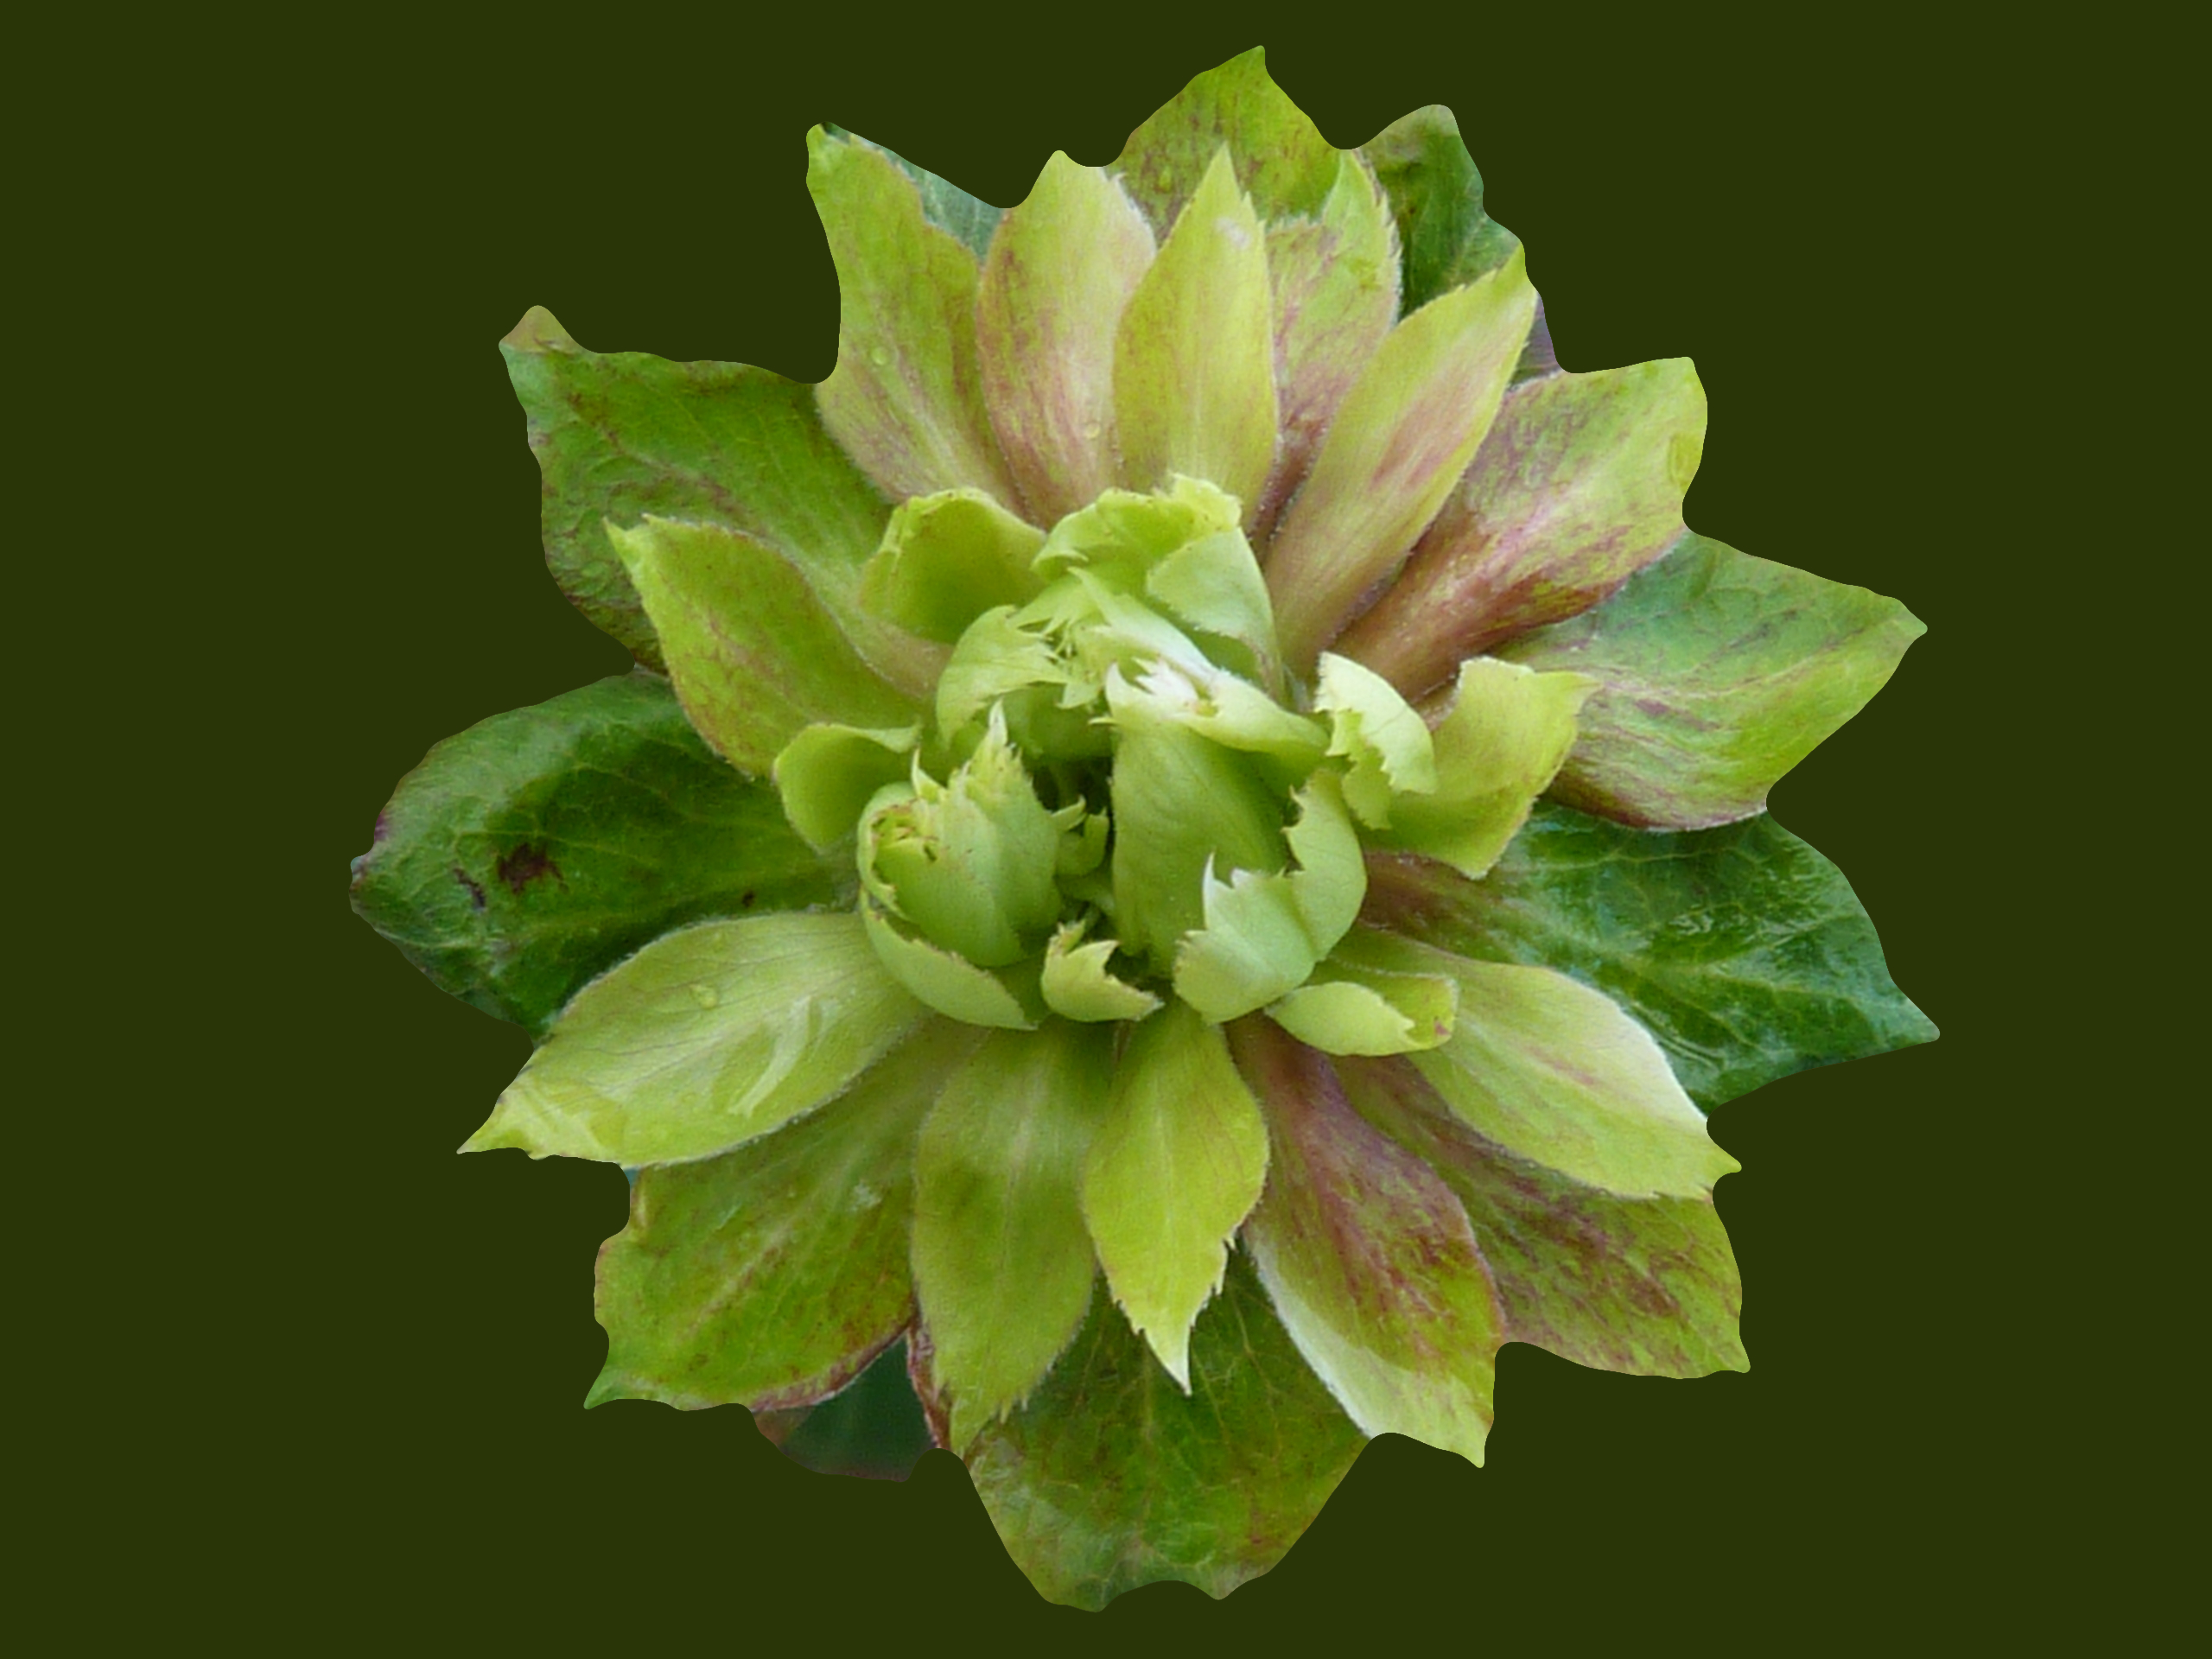 file viridifolia green rose jpg wikimedia commons https commons wikimedia org wiki file viridifolia green rose jpg